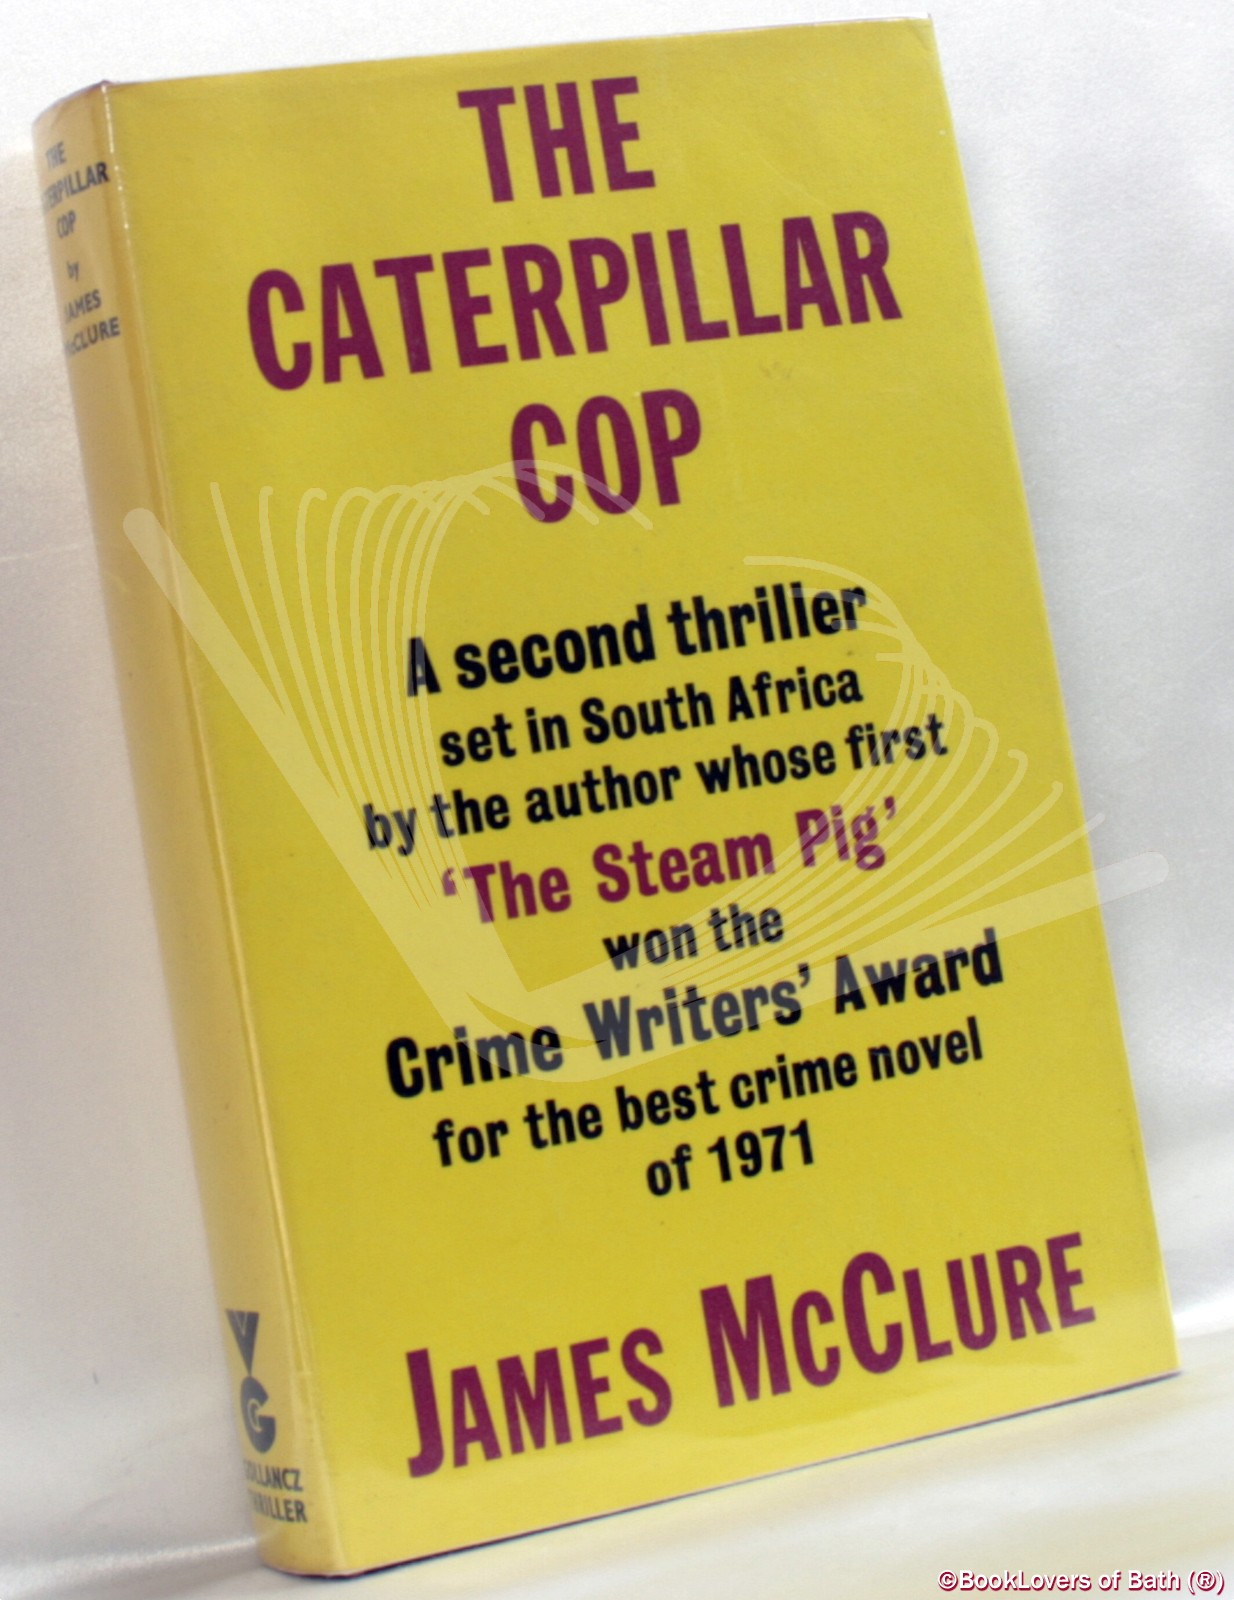 The Caterpillar Cop - James McClure